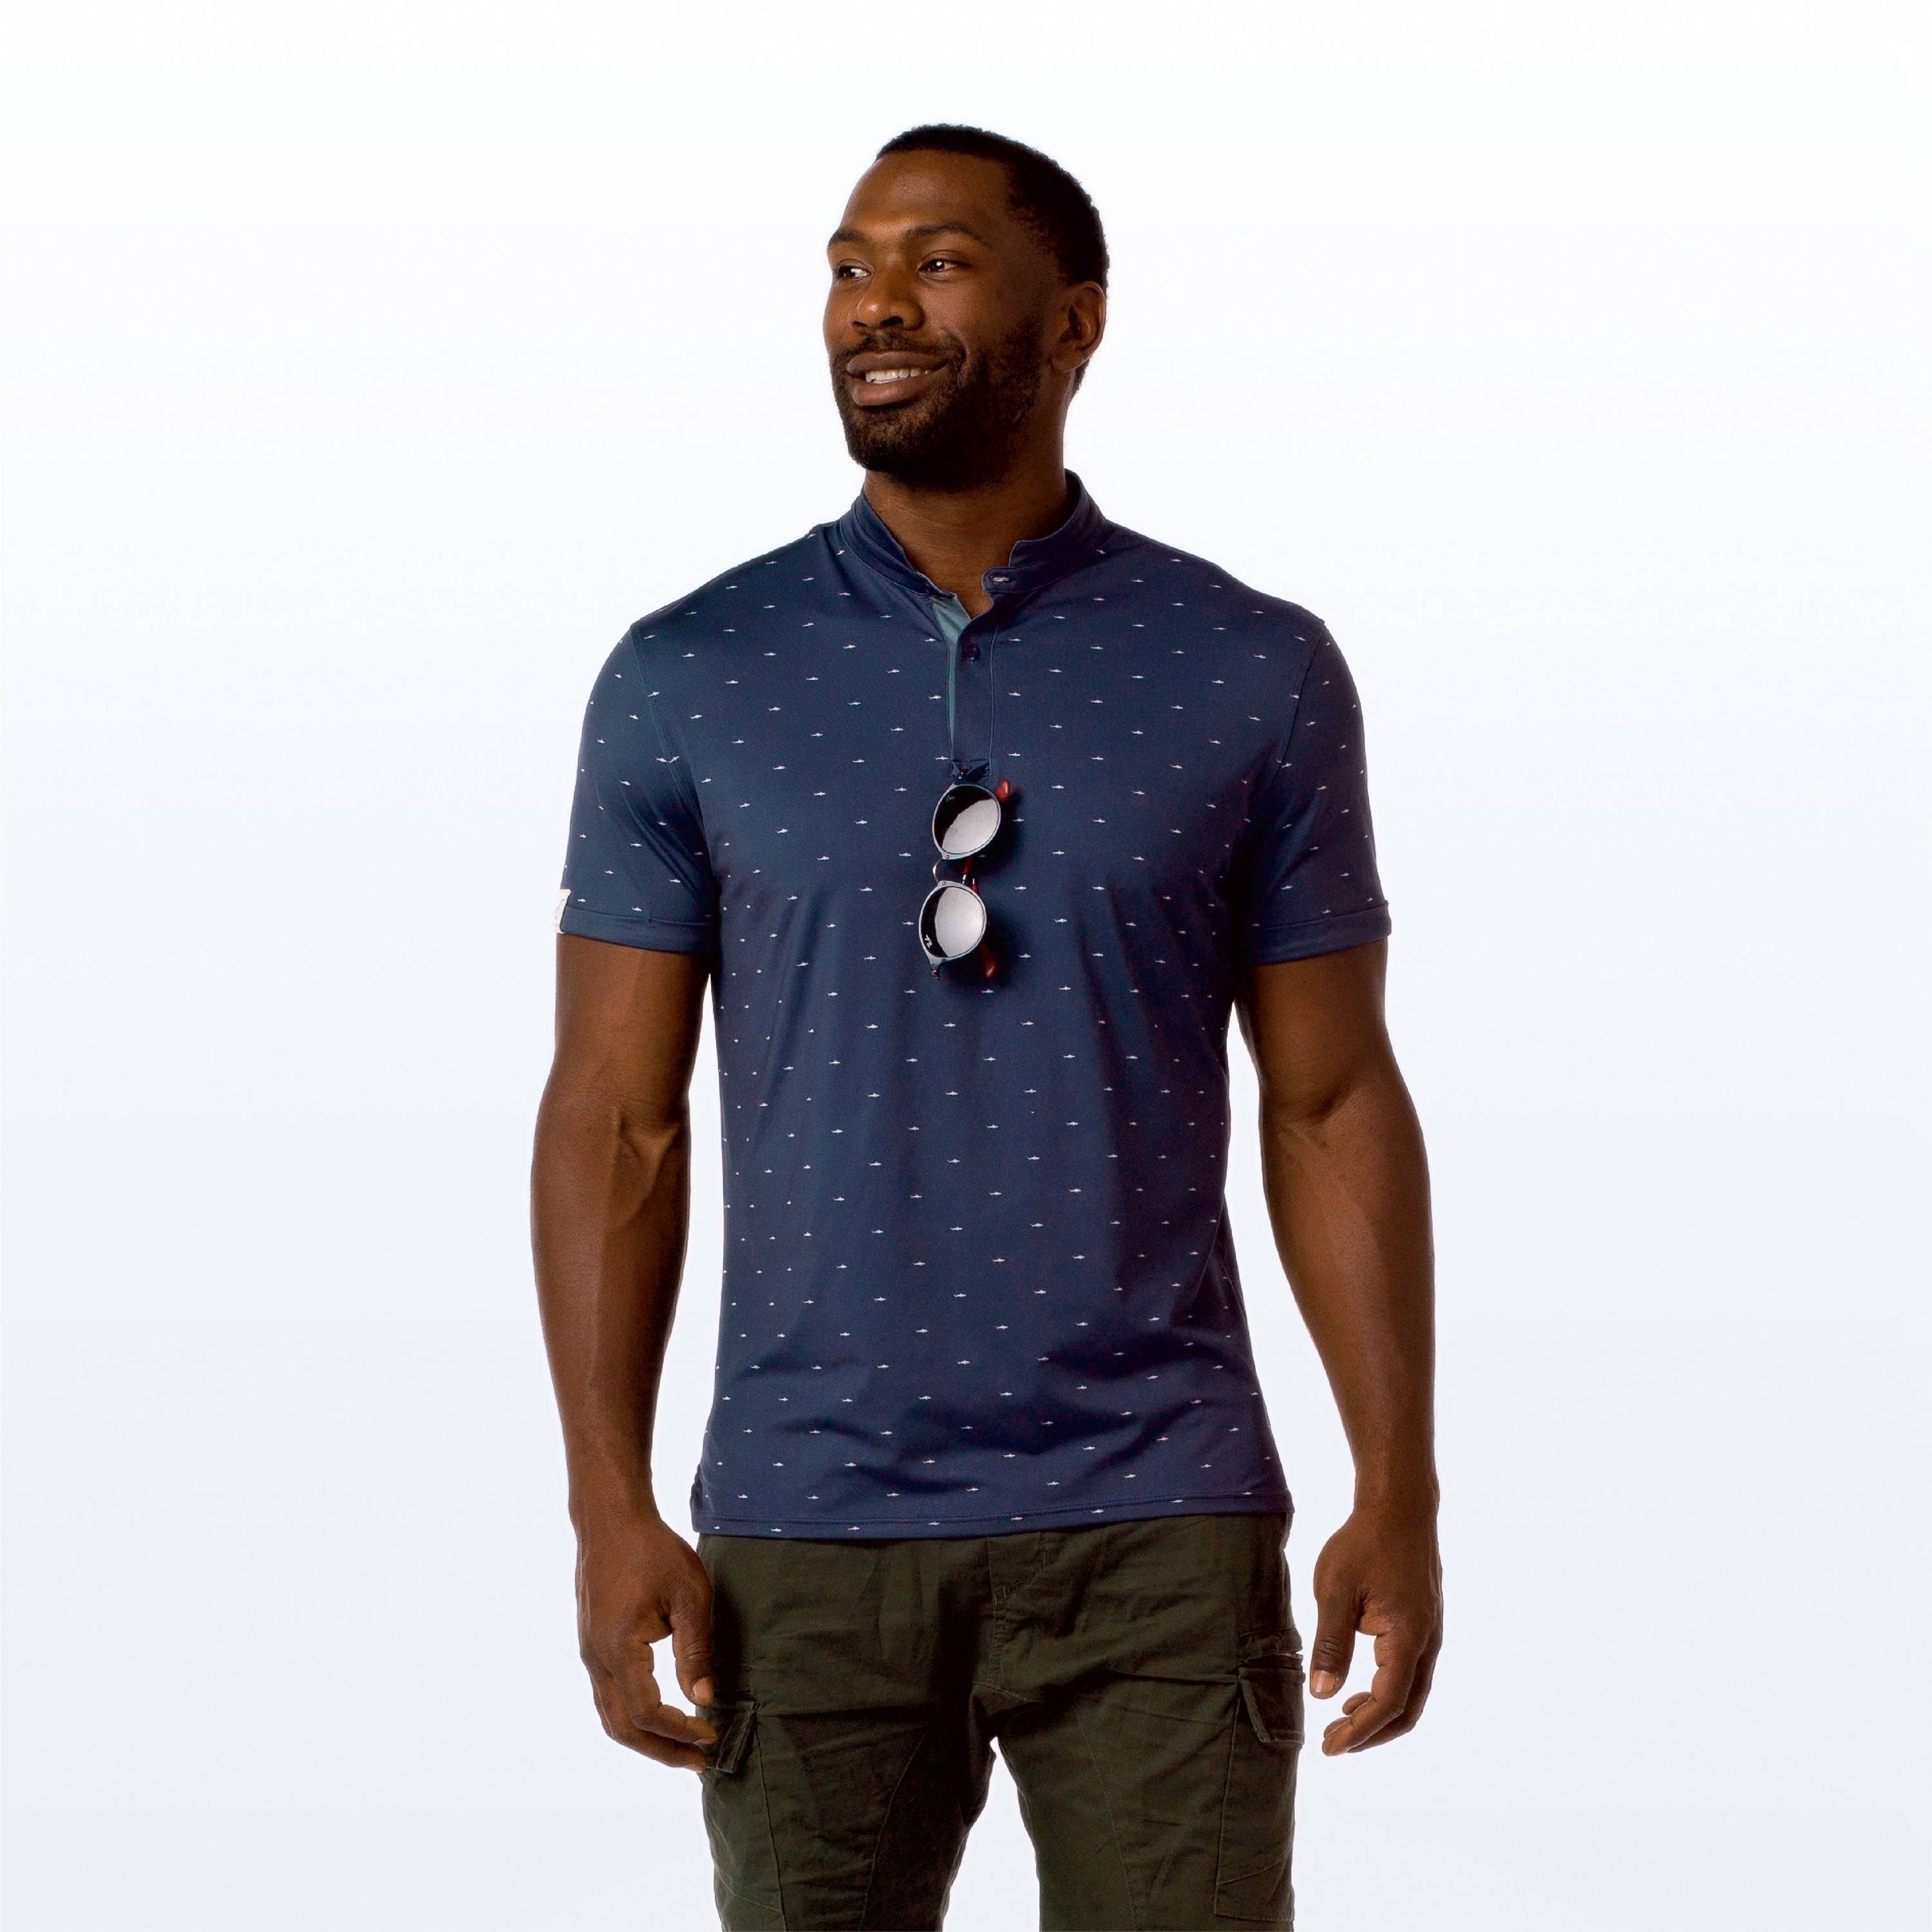 MANTRA El Tiburon Polo - sustainable mens polo made in the USA from repurposed materials